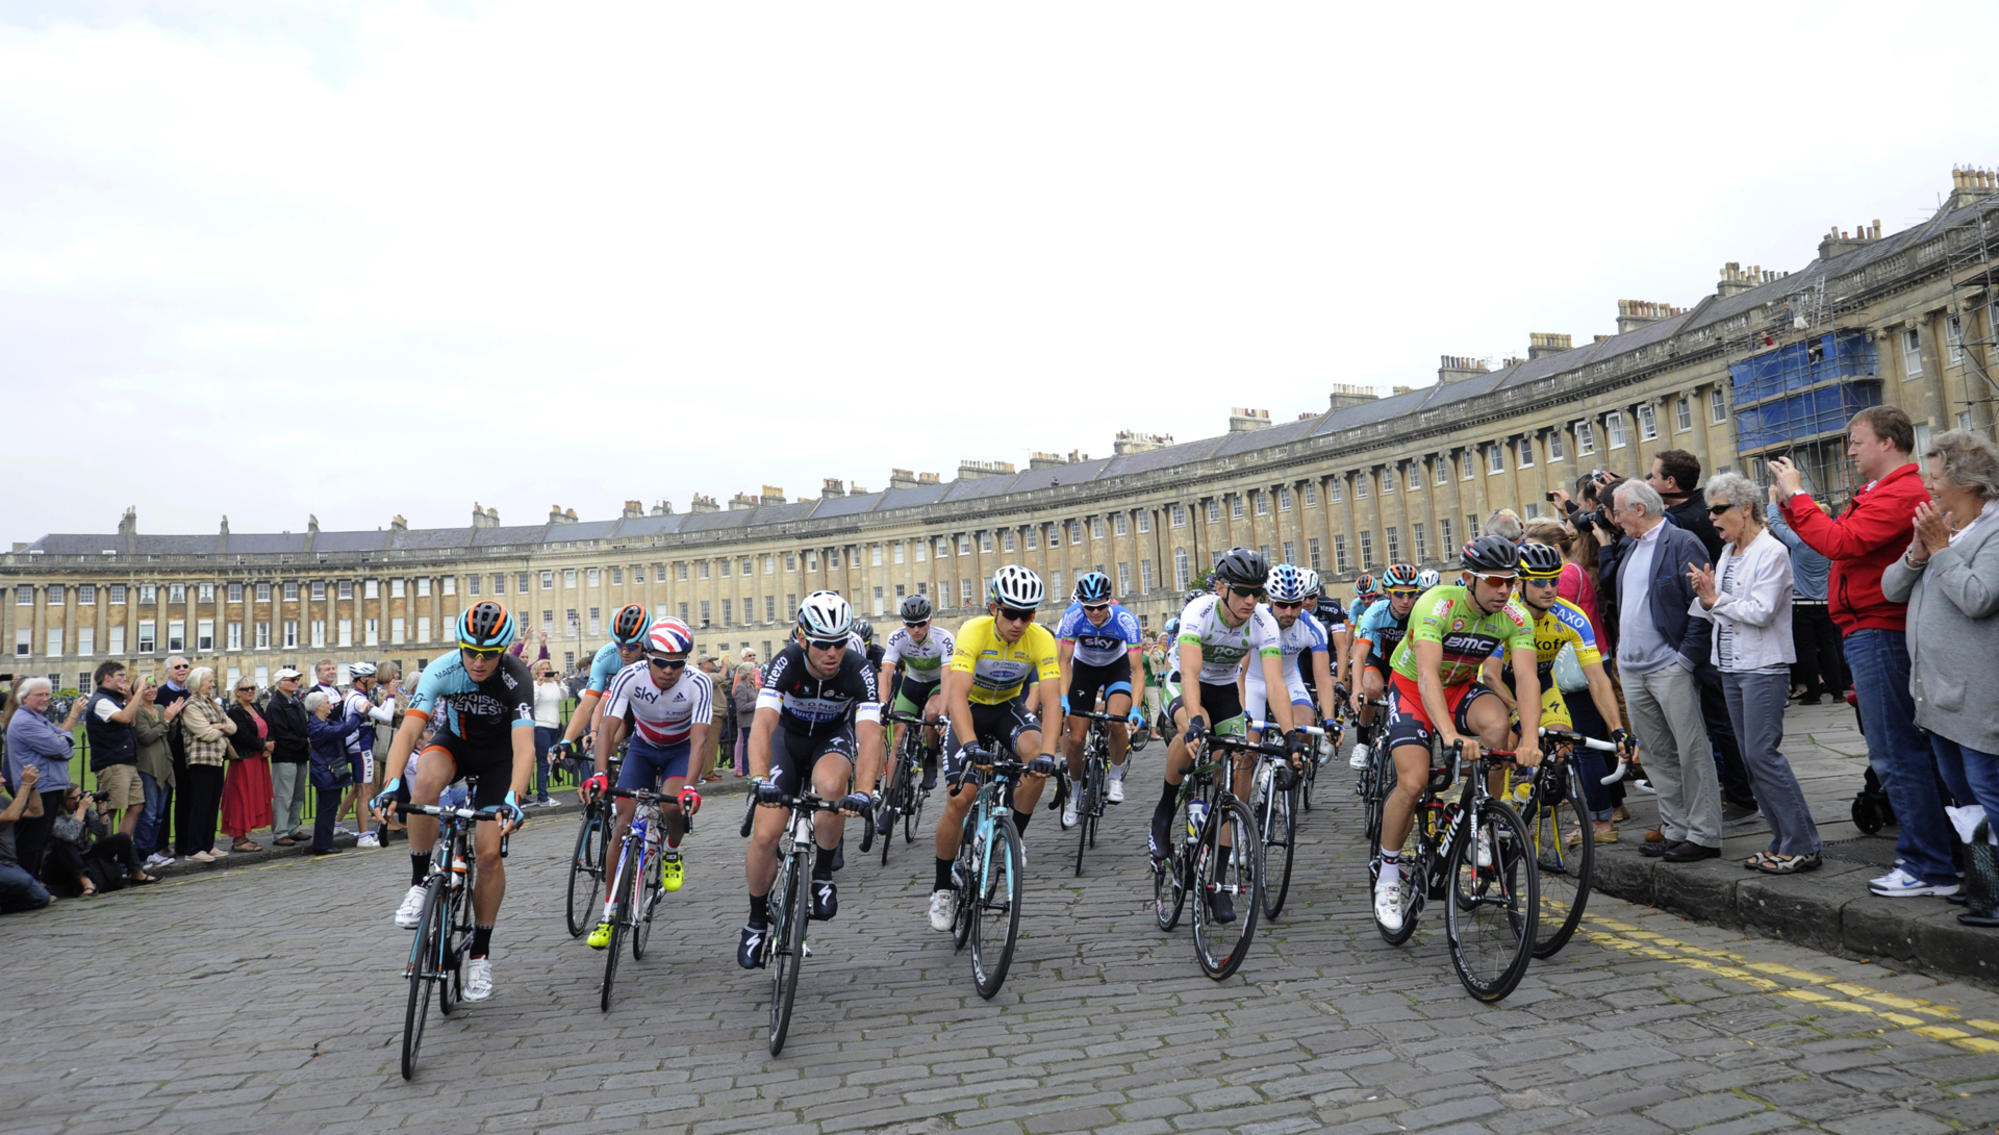 Tour of Britain taking place outside the royal crescent.